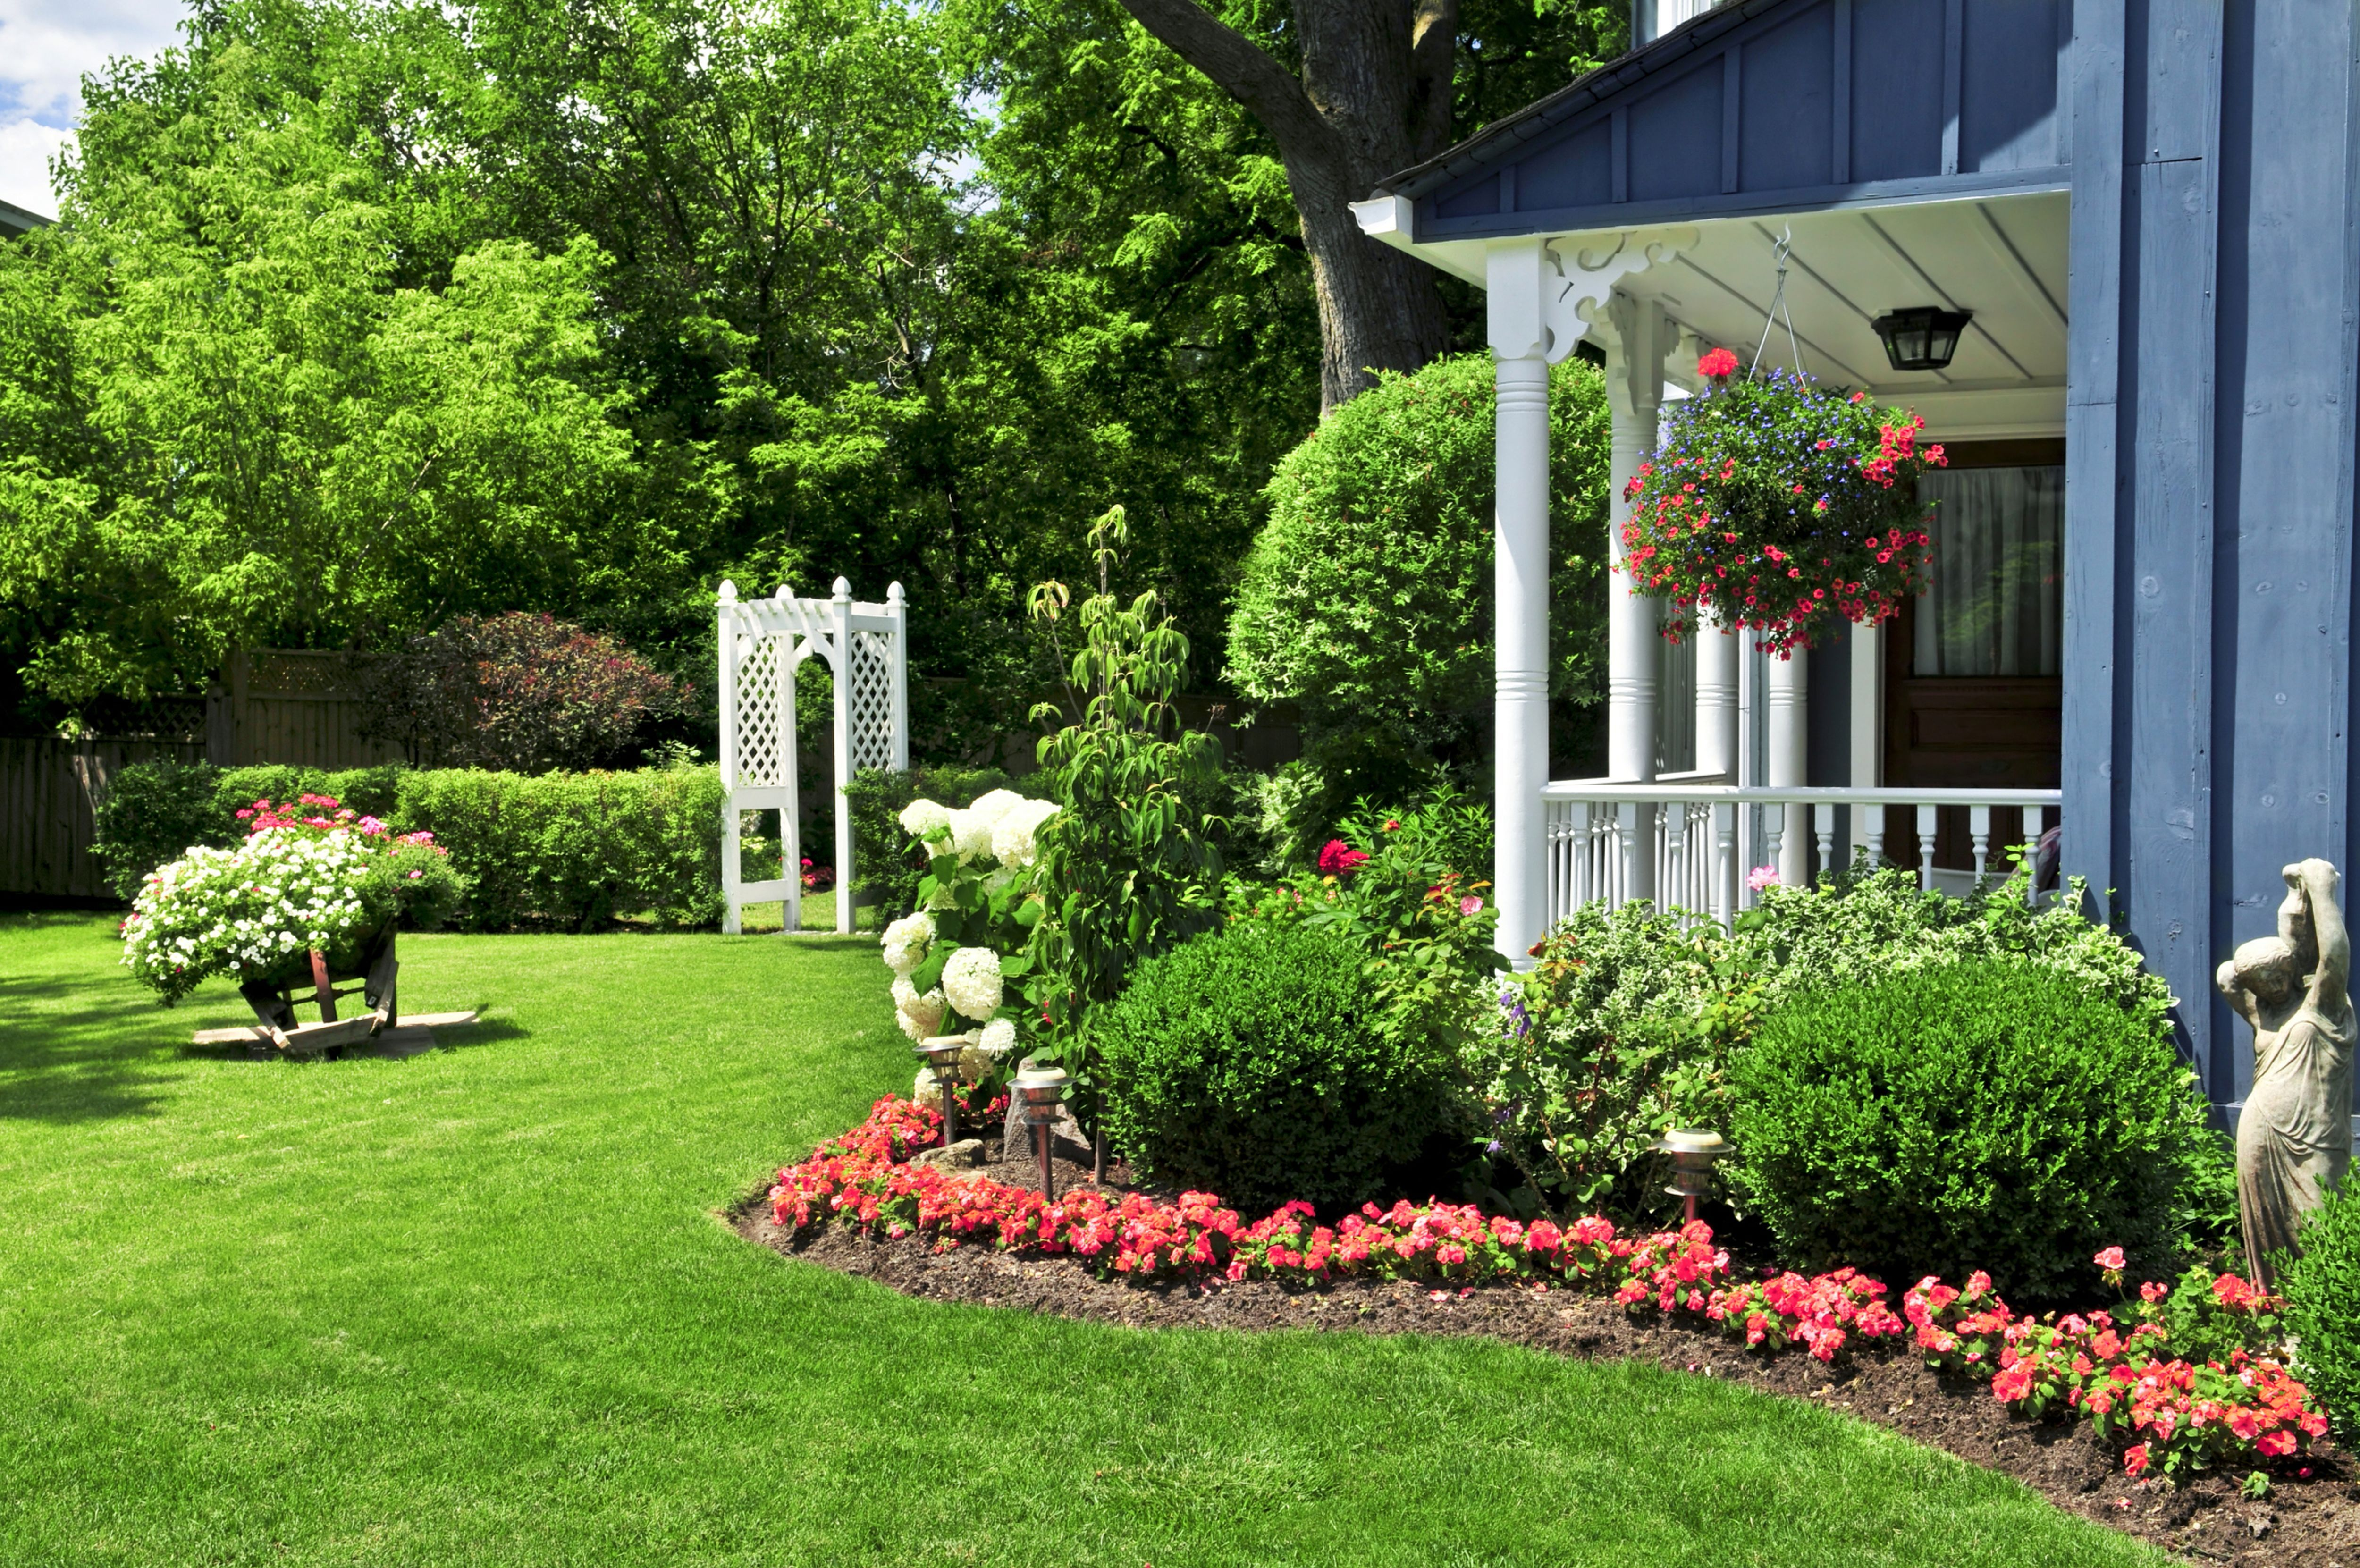 Glamorous landscaping plants arizona and landscaping plants for south florida